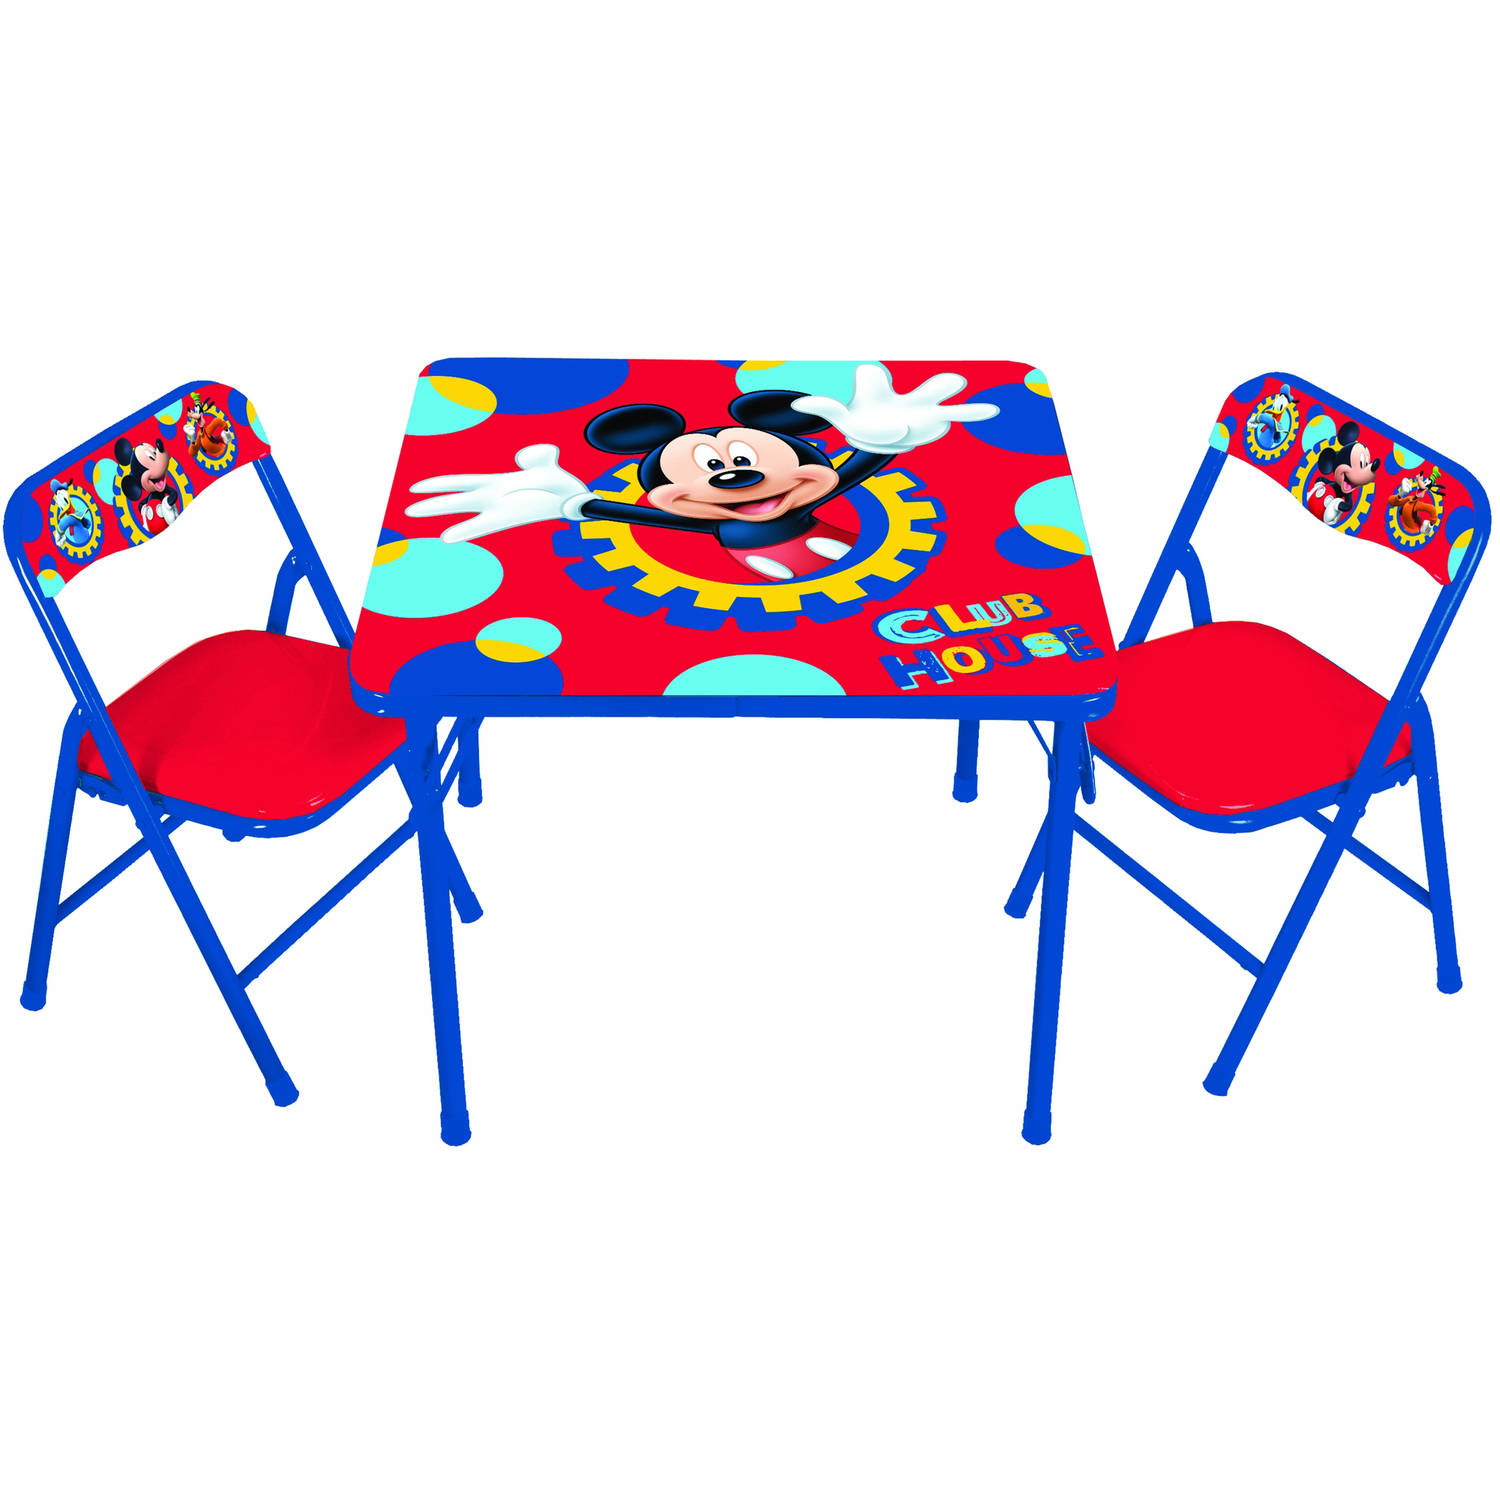 disney mickey mouse playground pals activity table set walmart com